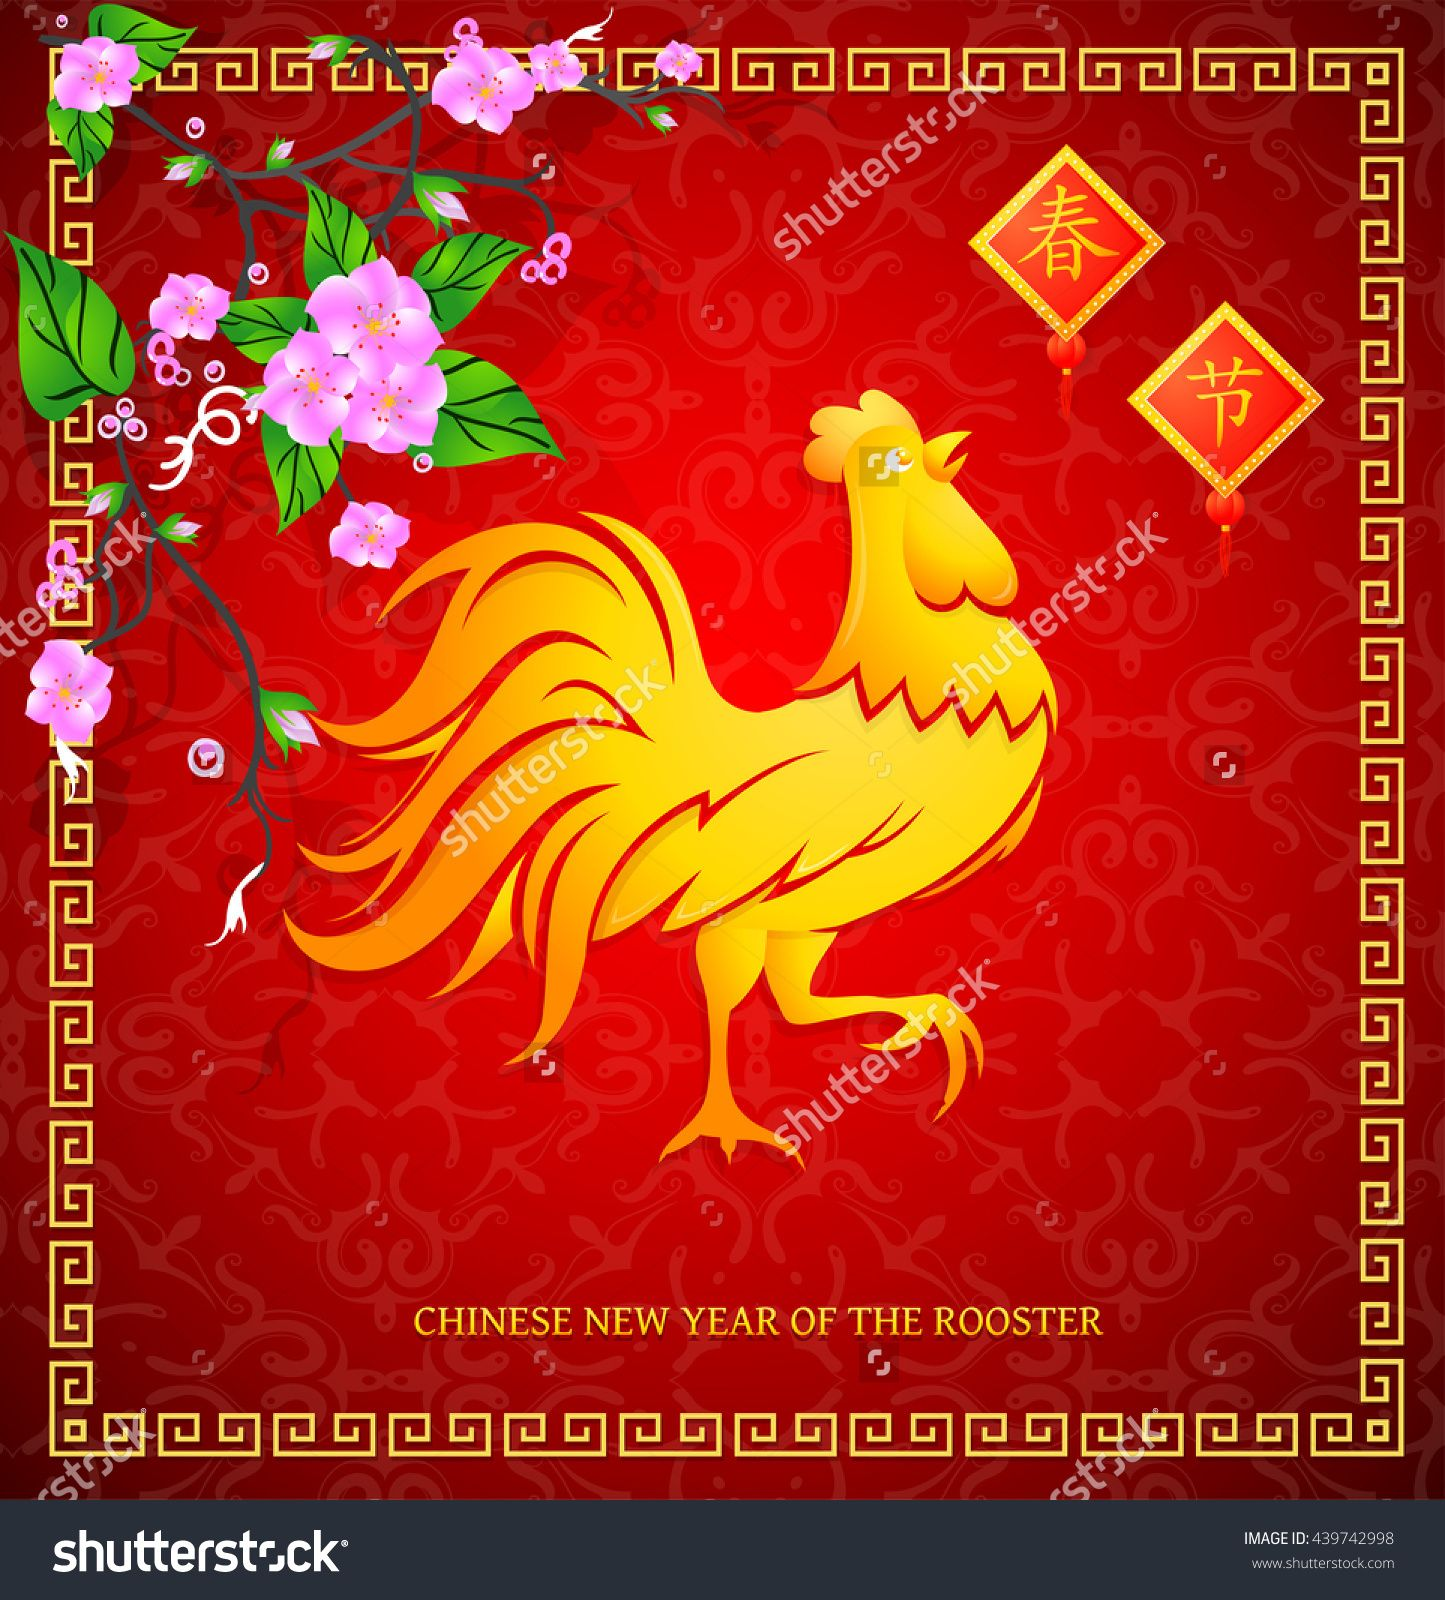 Greeting card with rooster symbol for 2017 hieroglyph translation greeting card with rooster symbol for 2017 hieroglyph translation chinese new year buy this stock vector on shutterstock find other images buycottarizona Gallery